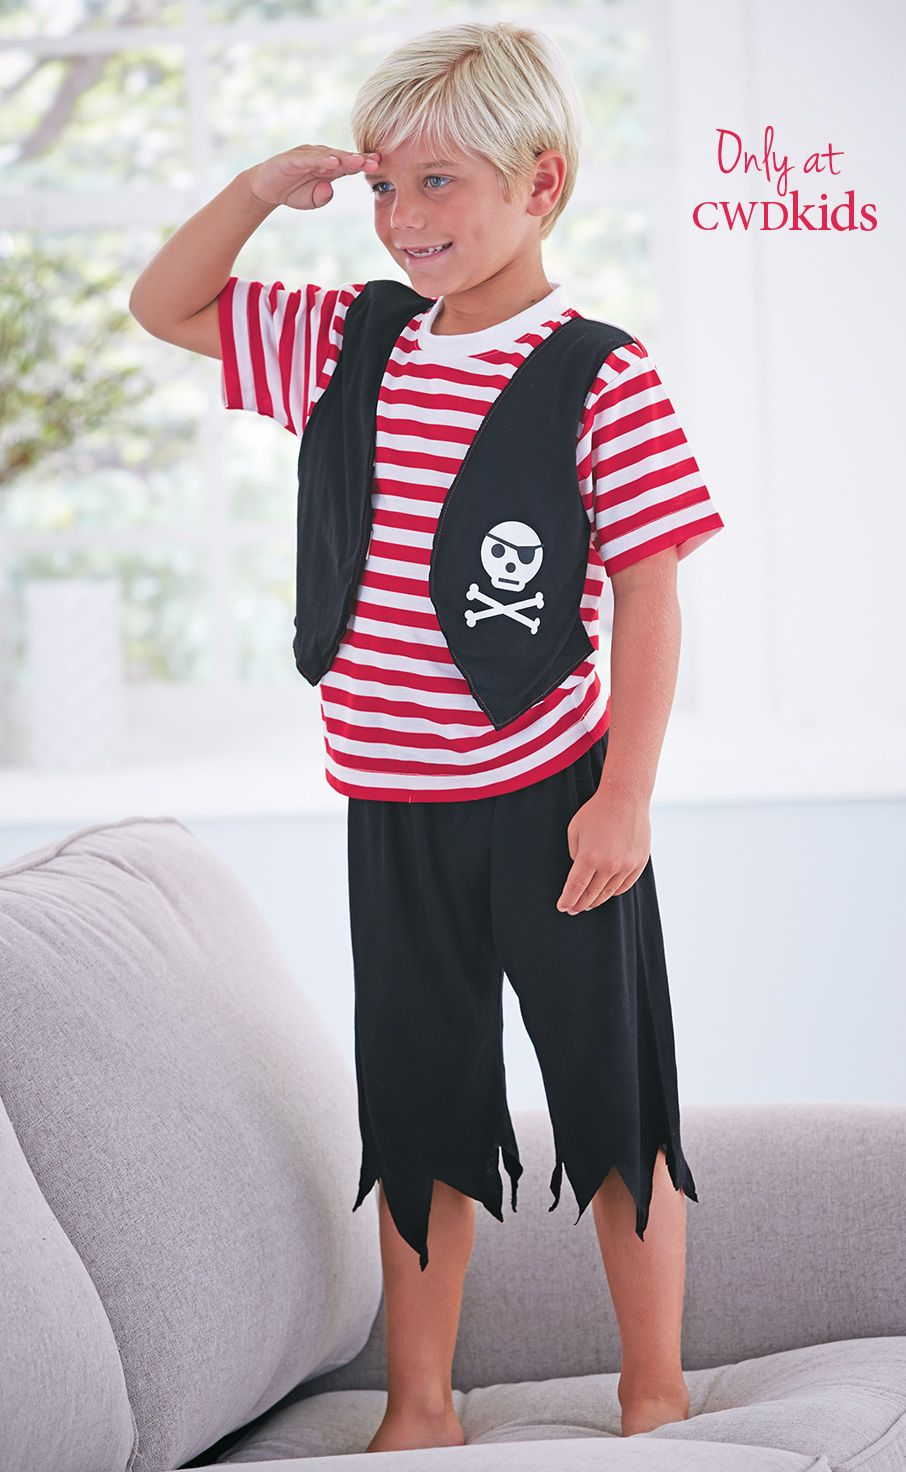 dd2a29ca2e61 From CWDkids  Pirate Pajamas